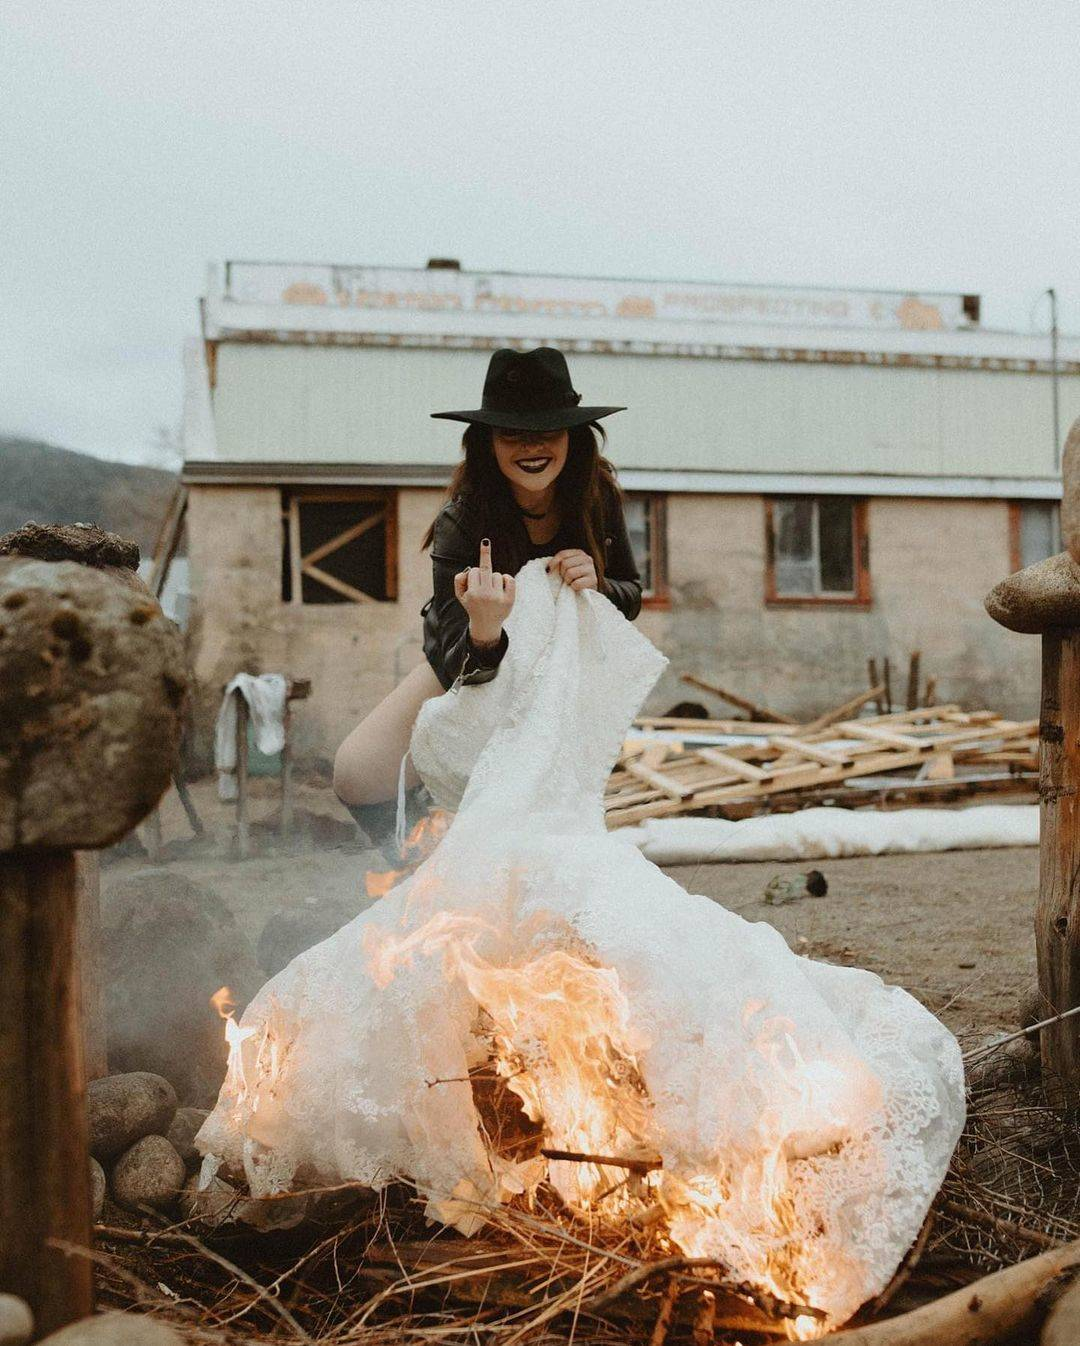 Woman gives middle finger while smiling and lighting wedding dress on fire